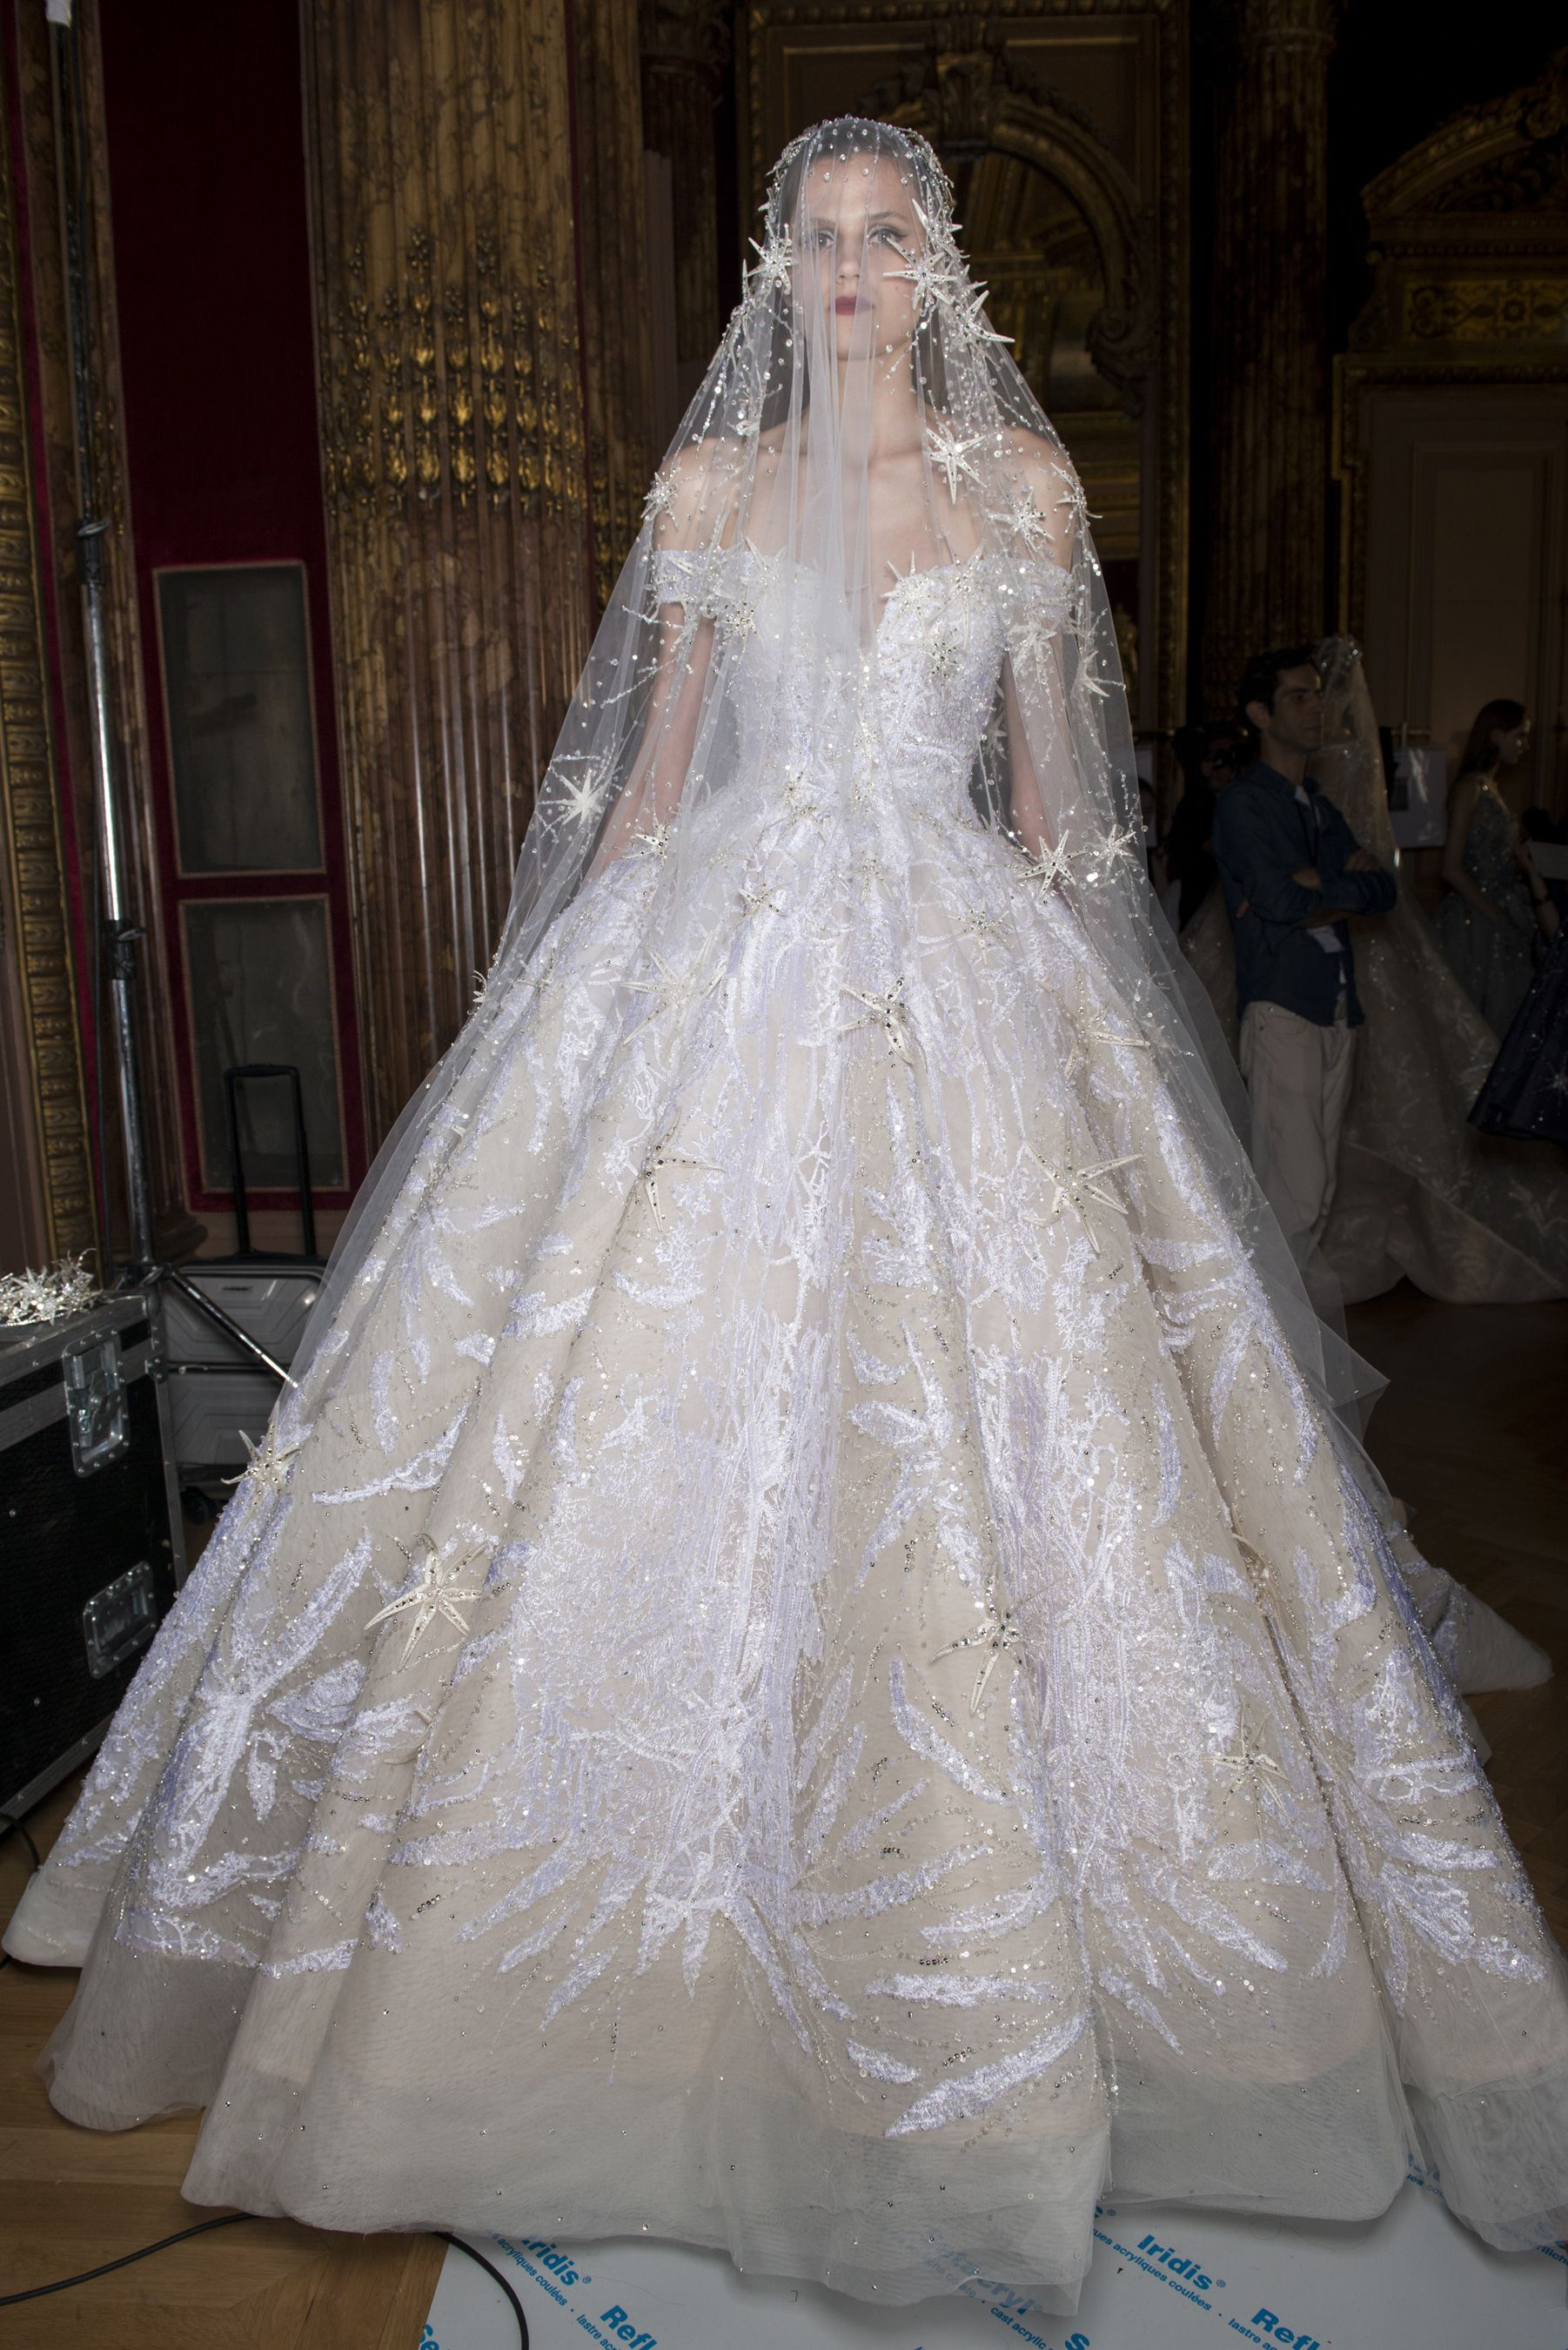 How much is a wedding dress  Omgi love this wedding dress so much  Gorgeous Dresses in